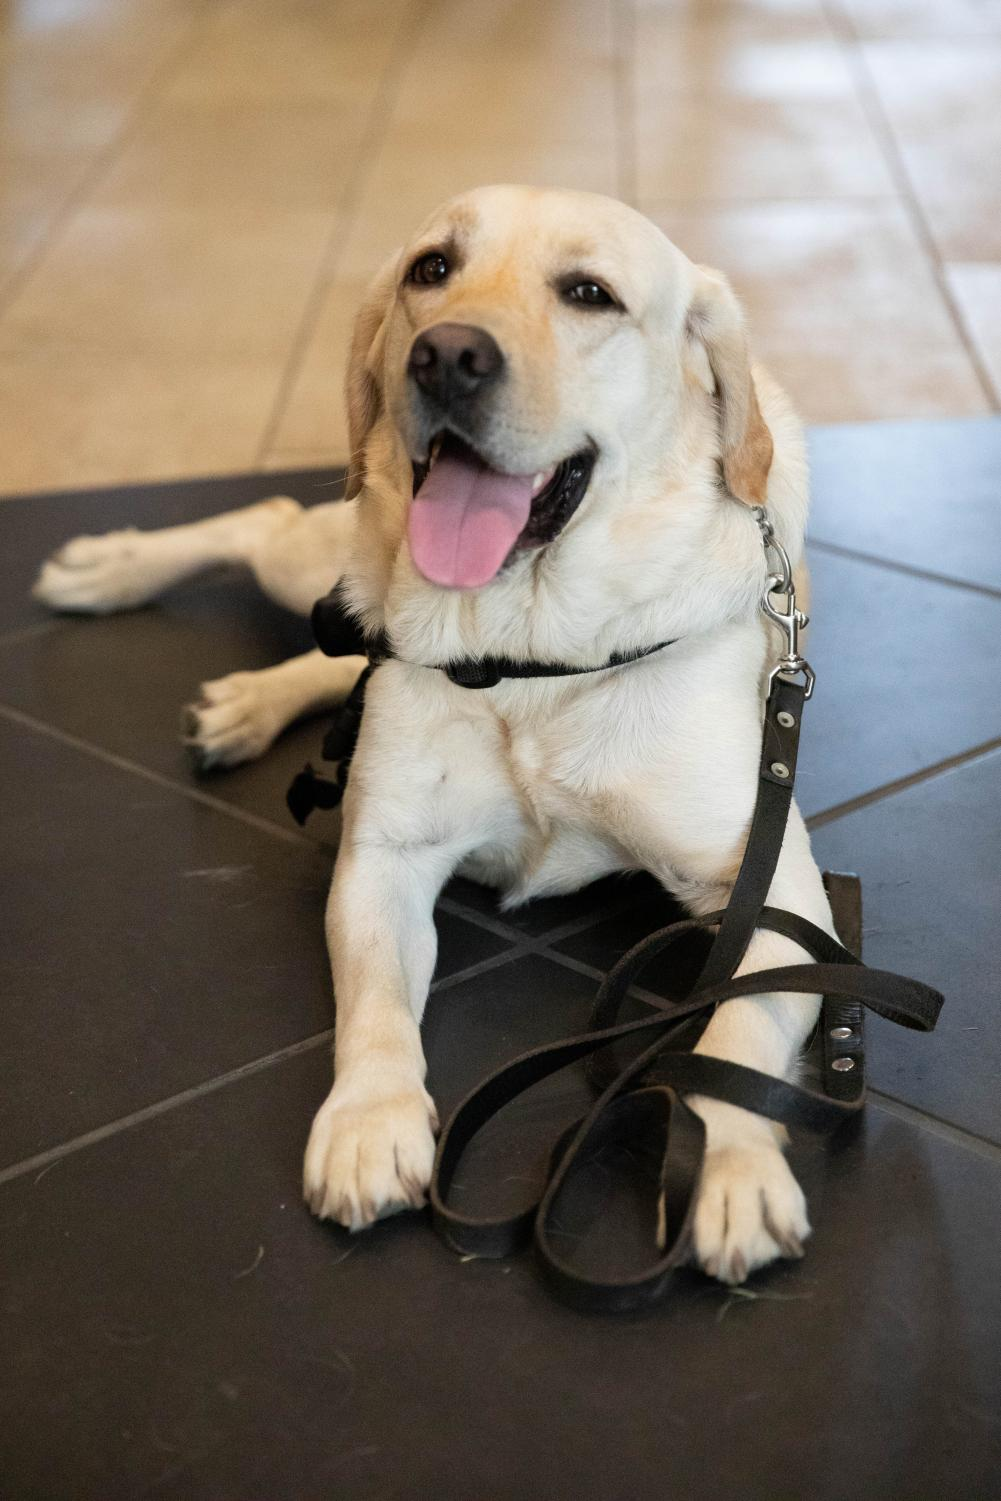 K9+Officer+Jack+welcomes+the+Class+of+2023+to+Vanderbilt+on+Saturday%2C+August+17%2C+2019.+%28Photo+by+Emily+Gon%C3%A7alves%29